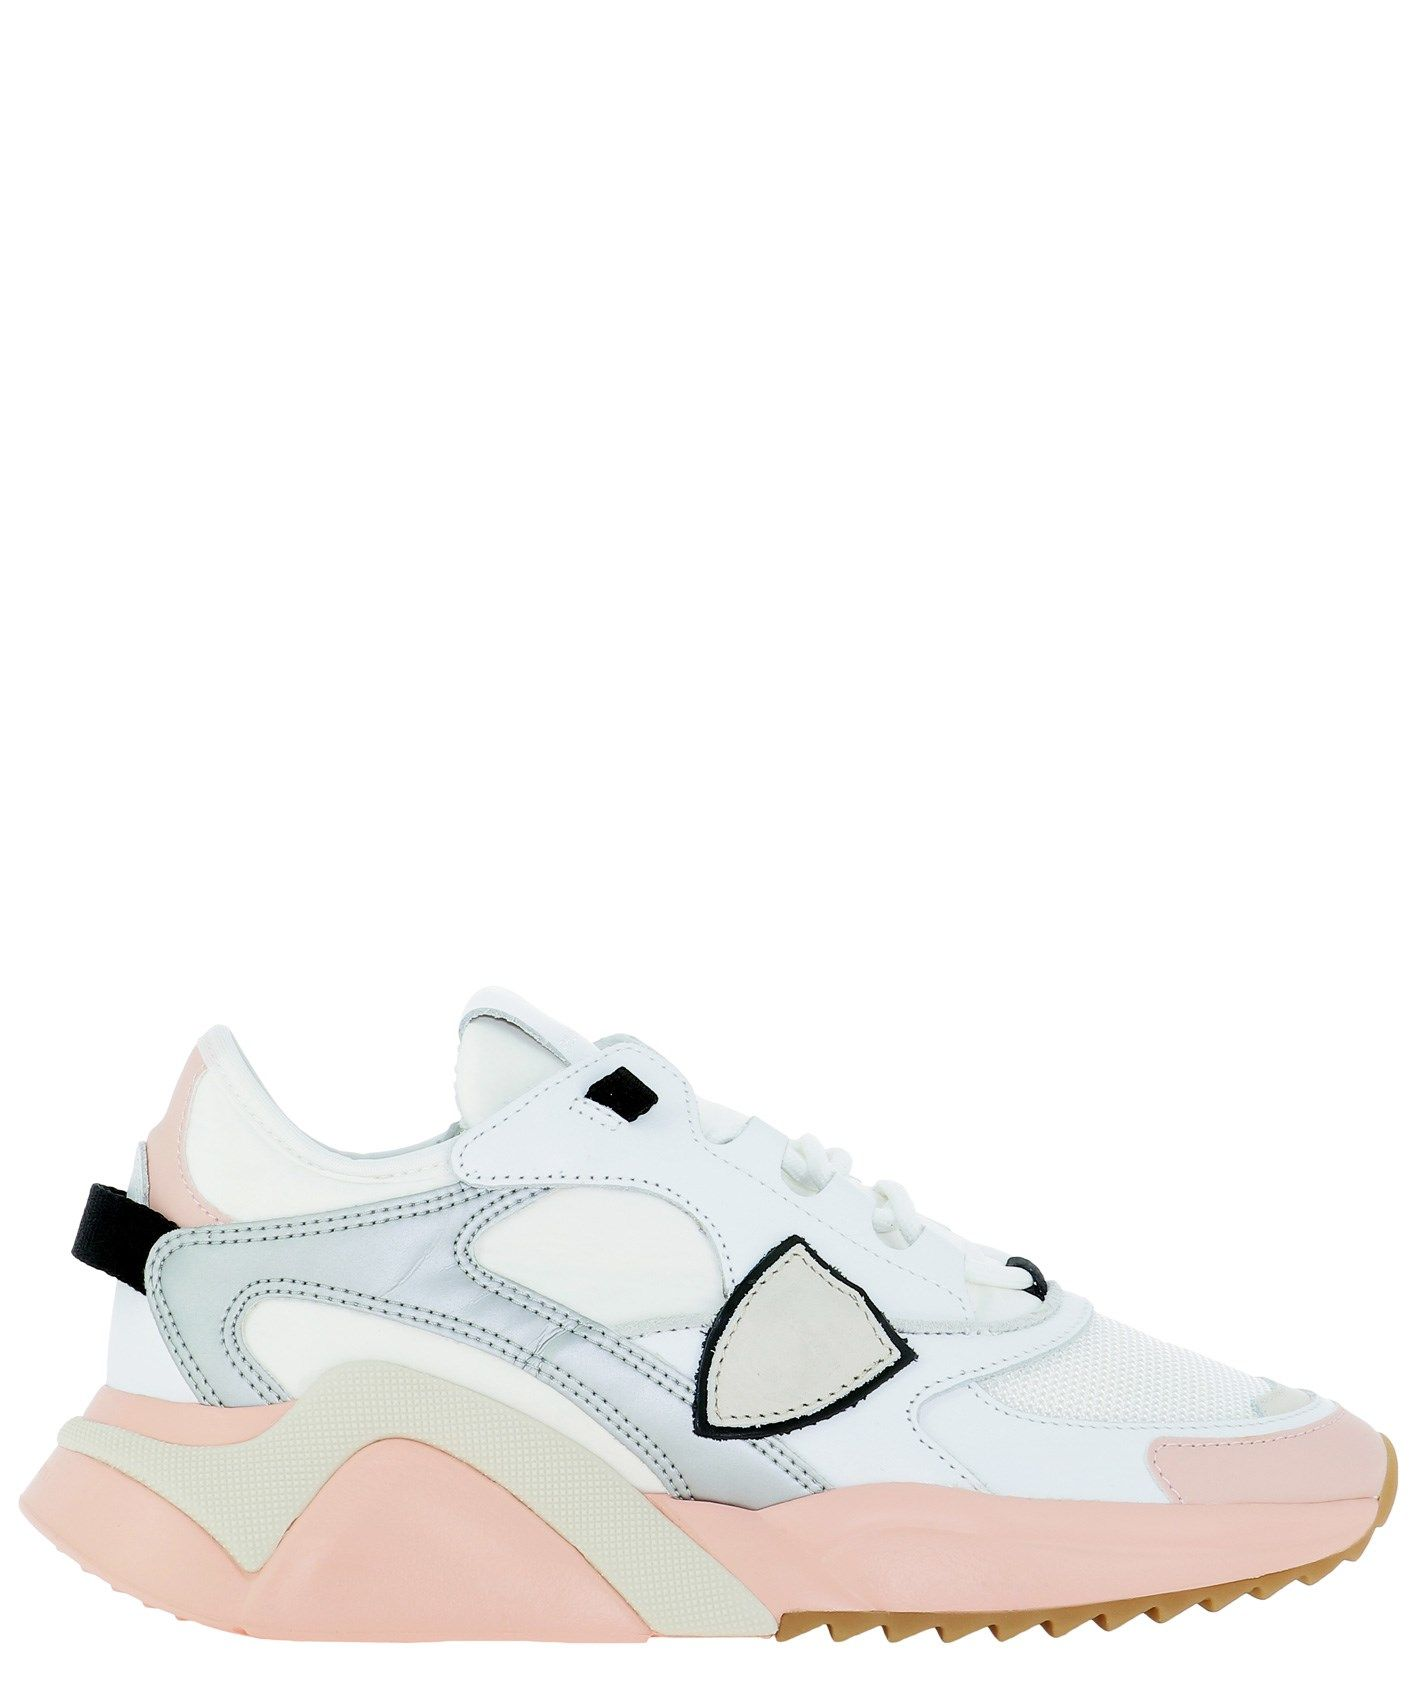 Philippe Model PHILIPPE MODEL WOMEN'S EZLDWIP4 WHITE OTHER MATERIALS SNEAKERS